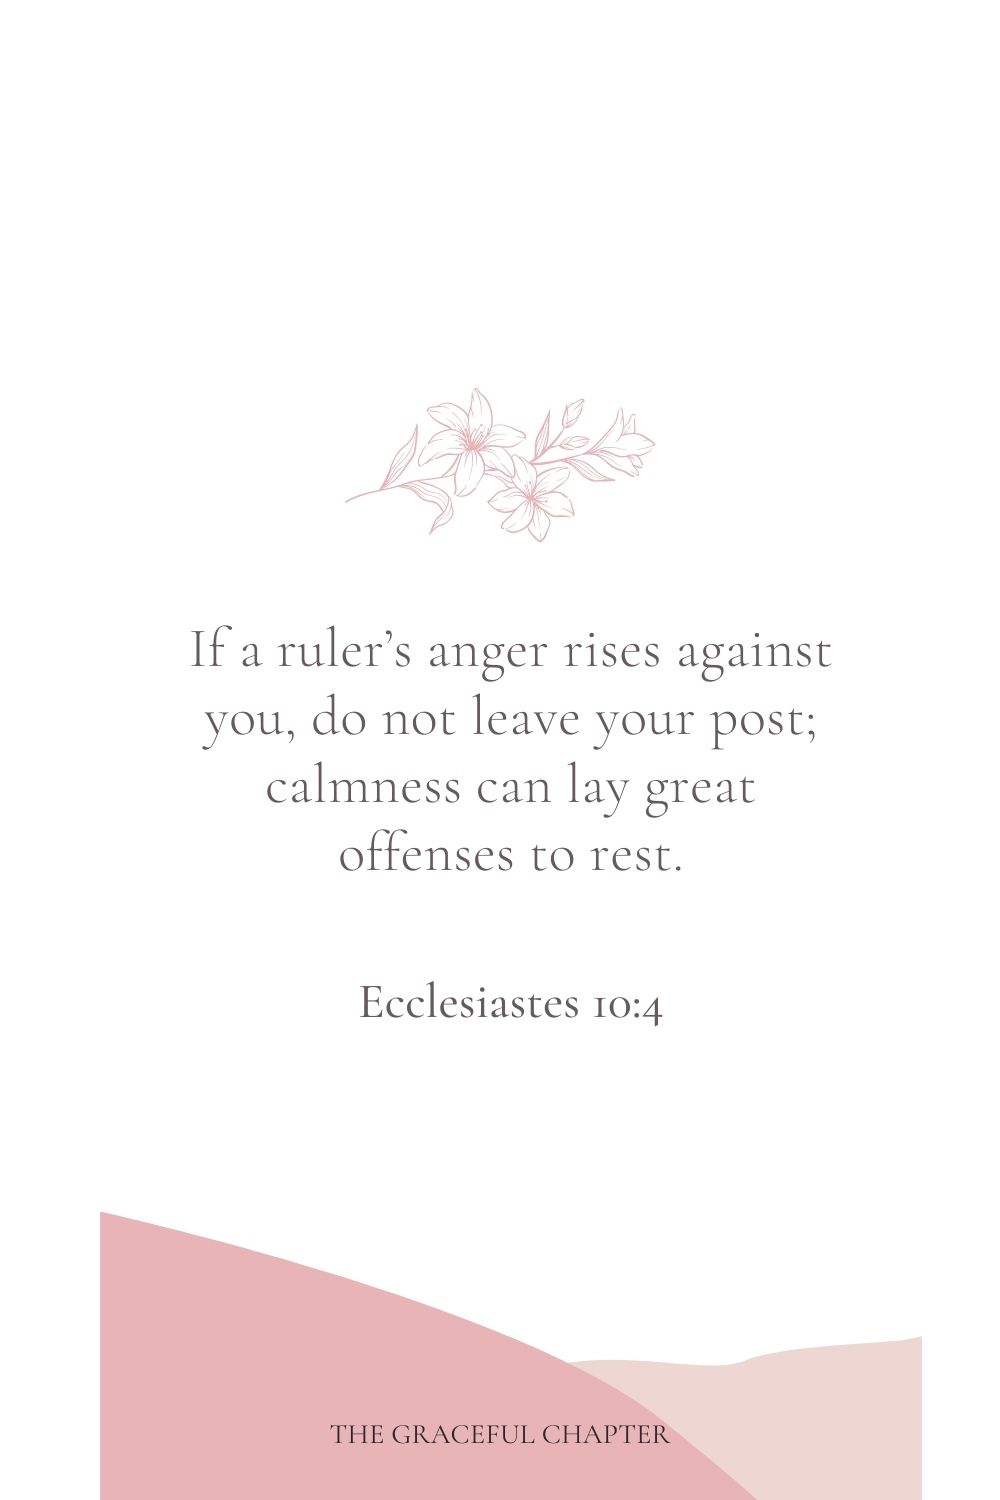 If a ruler's anger rises against you, do not leave your post; calmness can lay great offenses to rest. Ecclesiastes 10:4